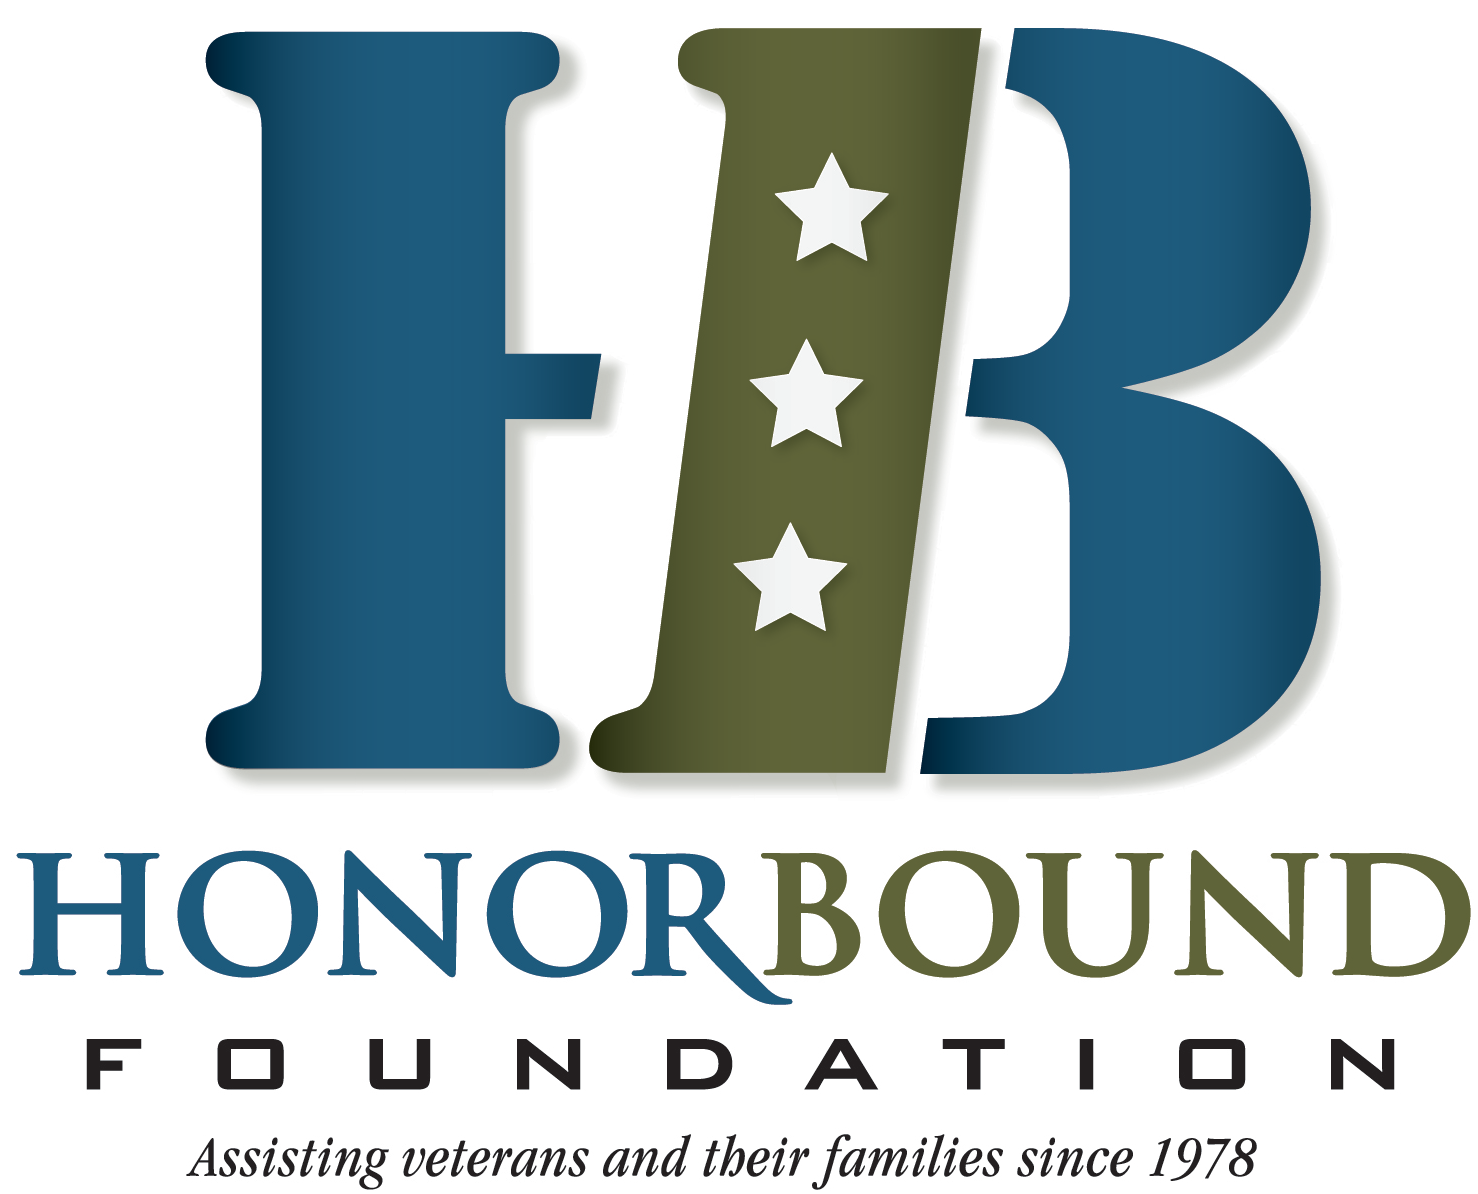 Maryland Car Donations - HonorBound Foundation - DonatecarUSA.com